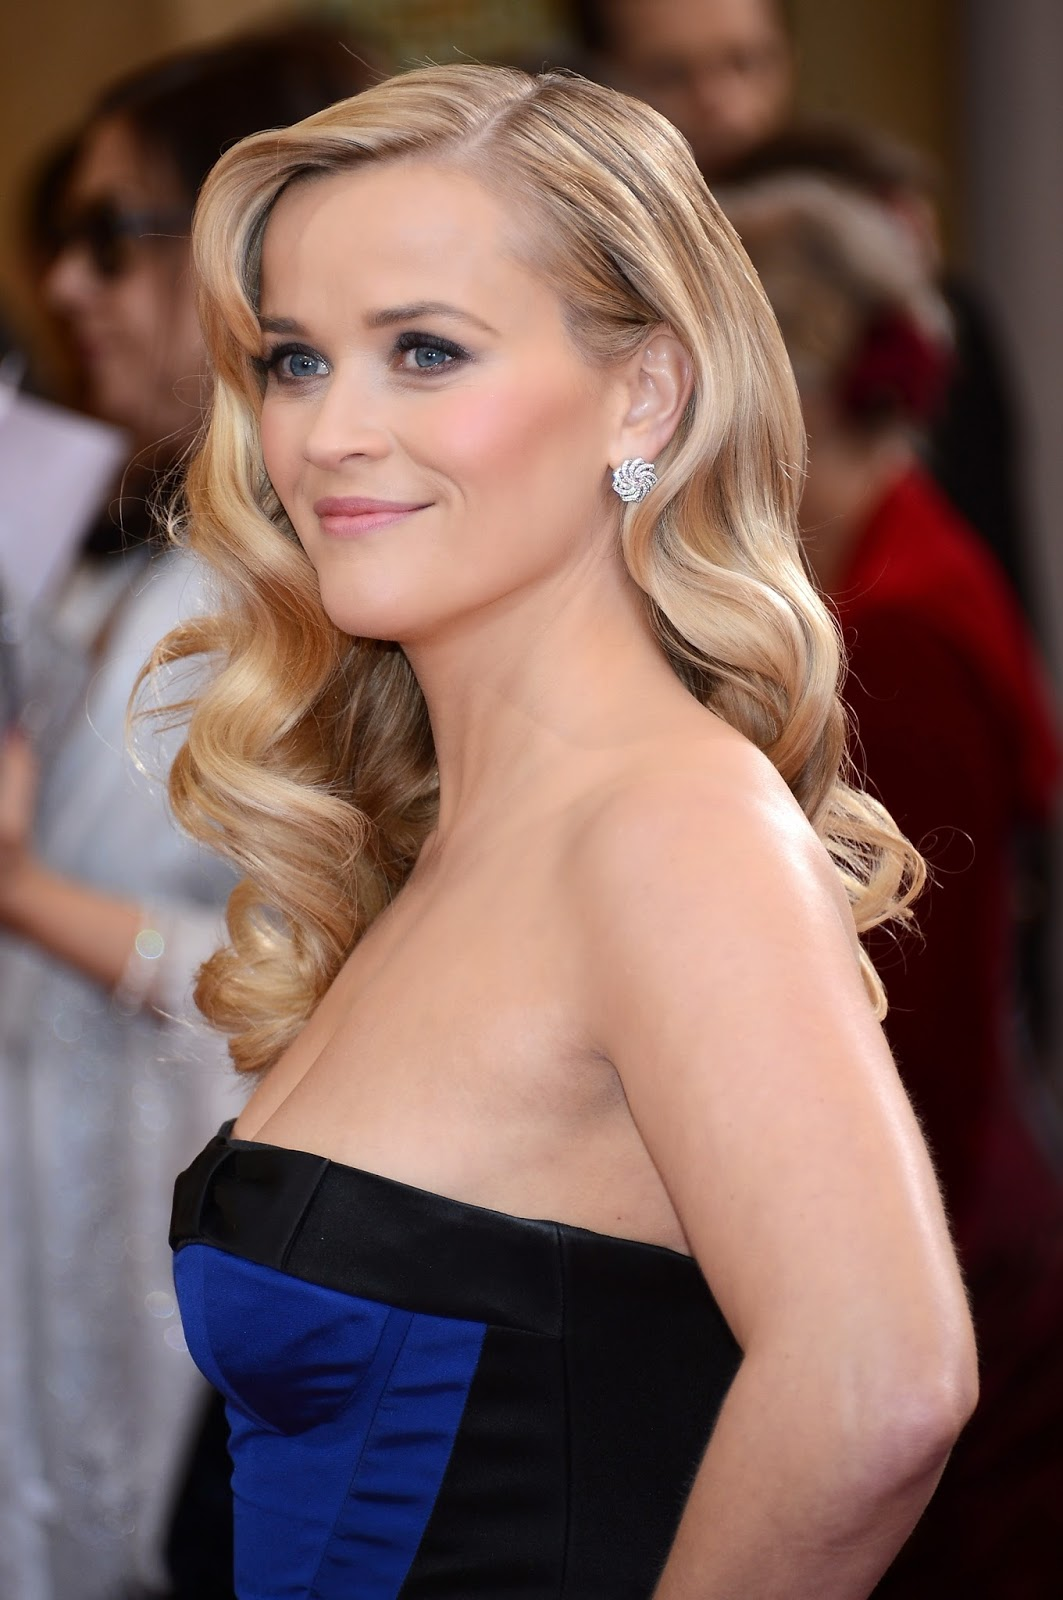 Reese Witherspoon Sexy And Hot HD Wallpapers - All HD